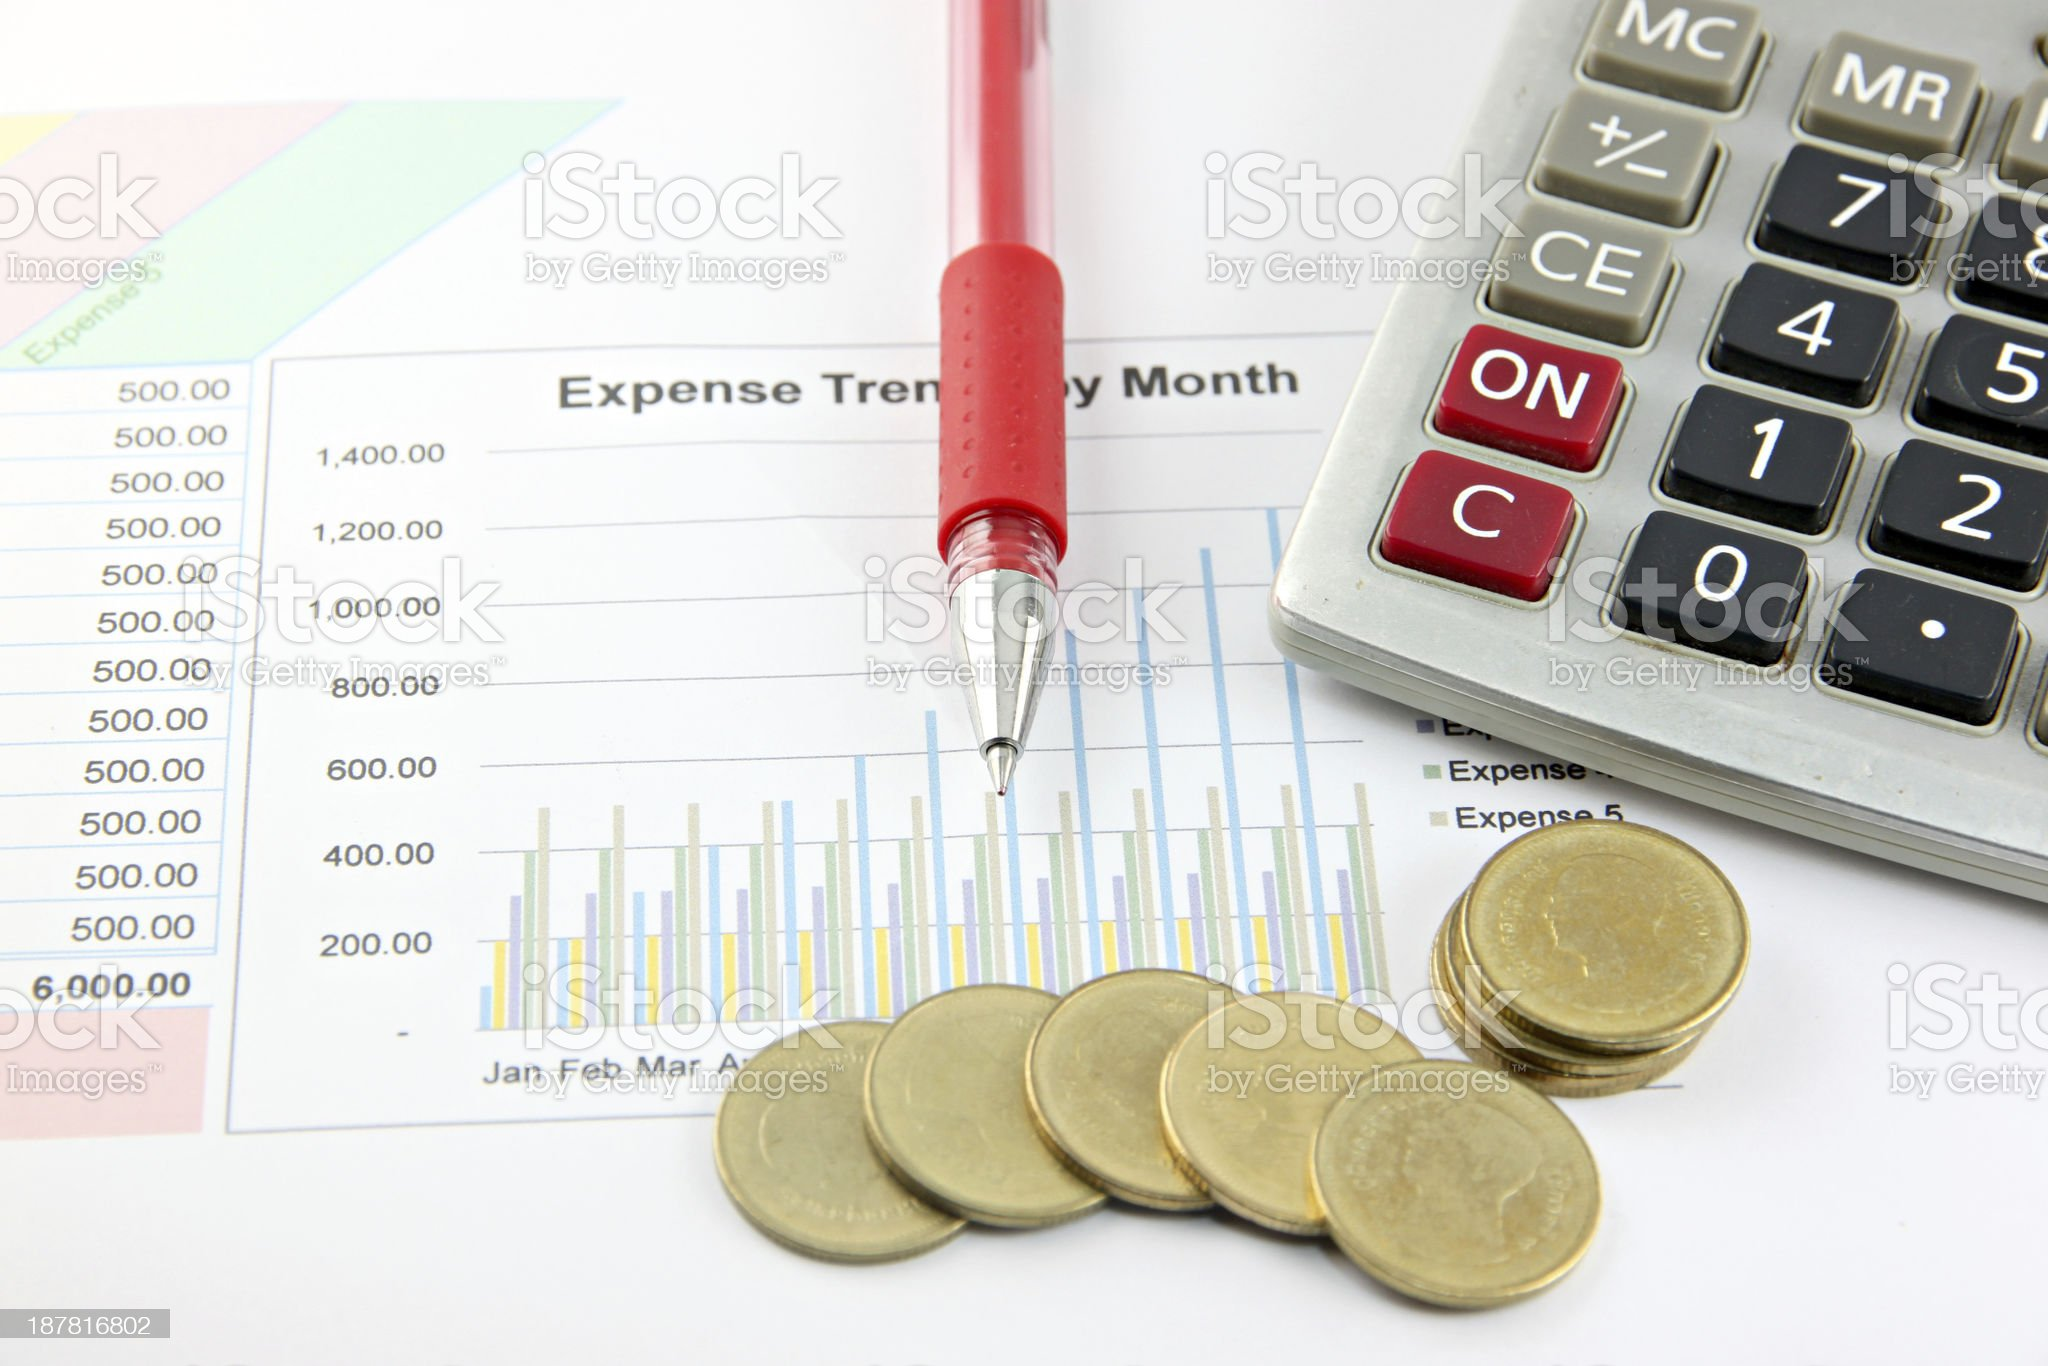 Red Pen,Calculator and money Coins on the Business graph. royalty-free stock photo